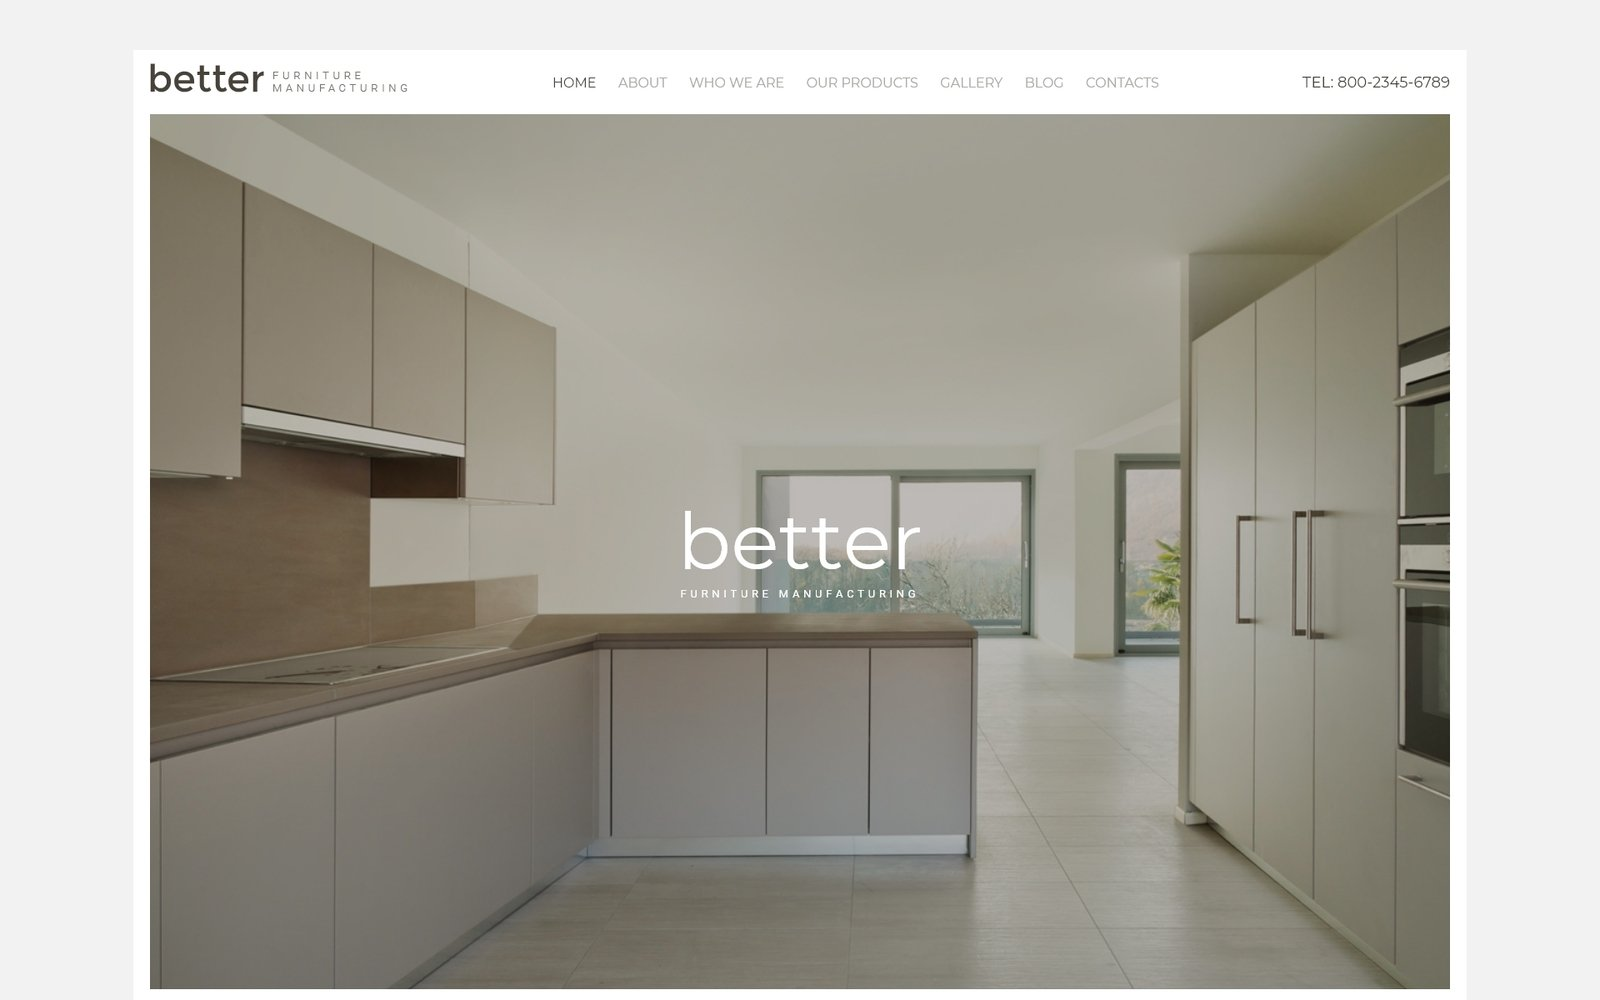 """""""Better Furniture Manufacturing"""" 响应式网页模板 #59557"""